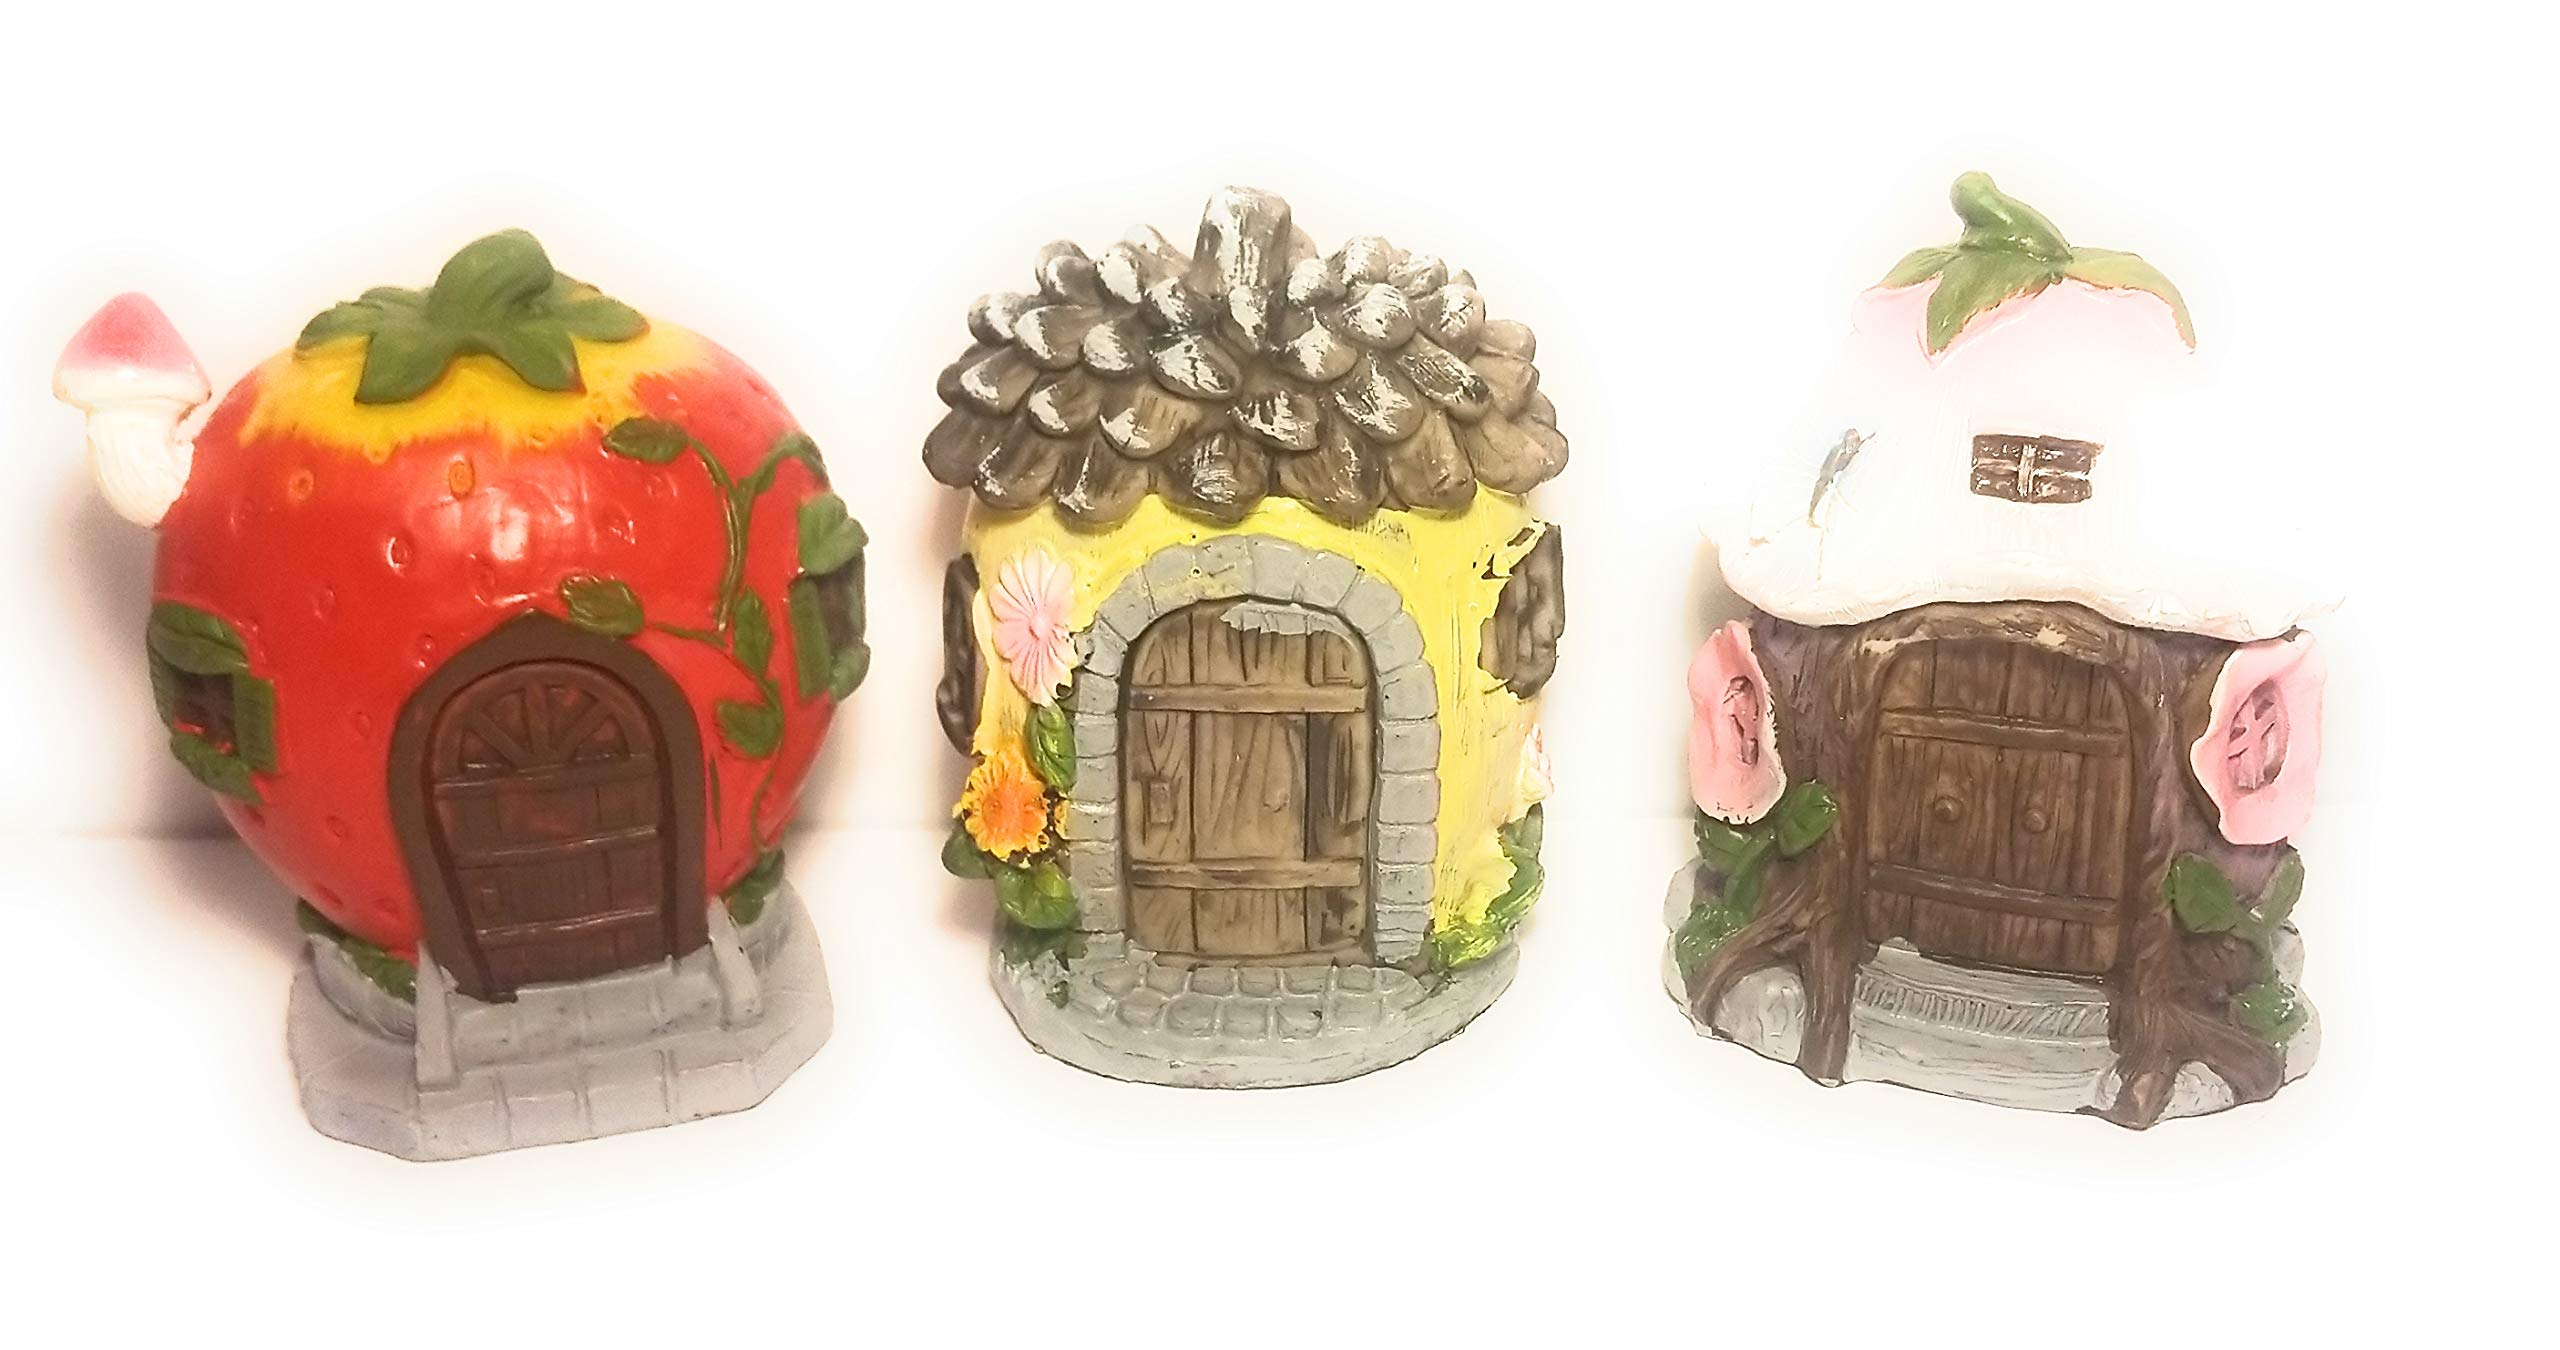 mmh Set of Three 3 Vibrant Miniature Garden Figurine Beautiful Houses with Bonus Figurine Mini Gnomes ONE for Each House Great for Garden and Home Decorating Collect Them All Complete Set